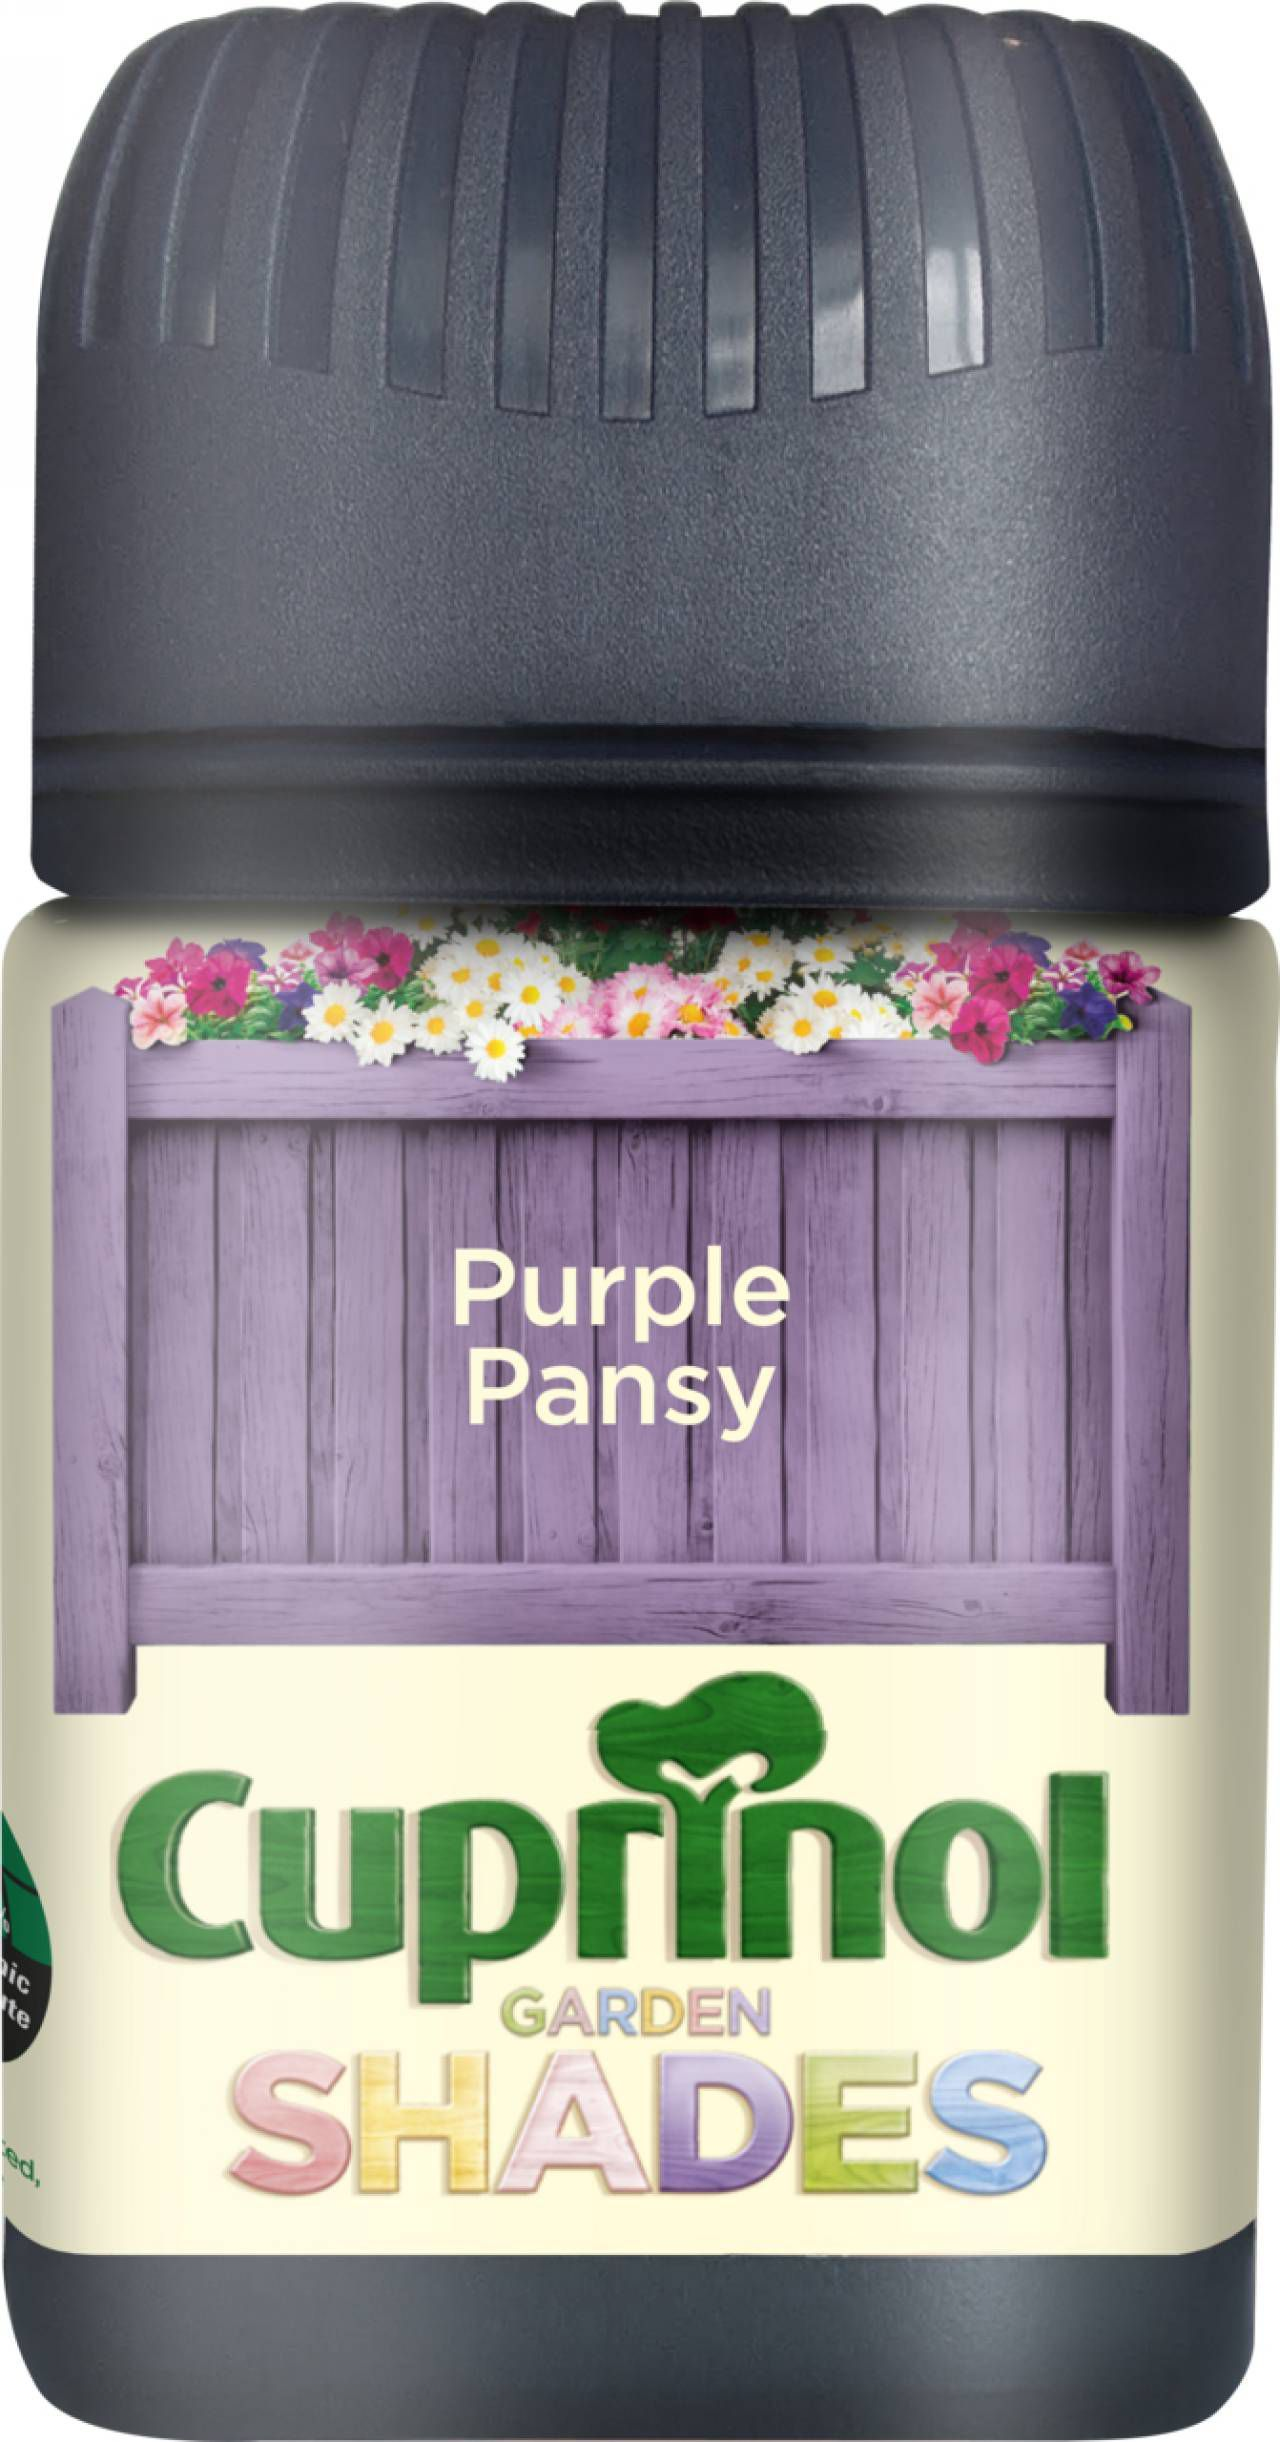 Cuprinol Garden Shades Purple Pansy Wood Paint 50ml Tester